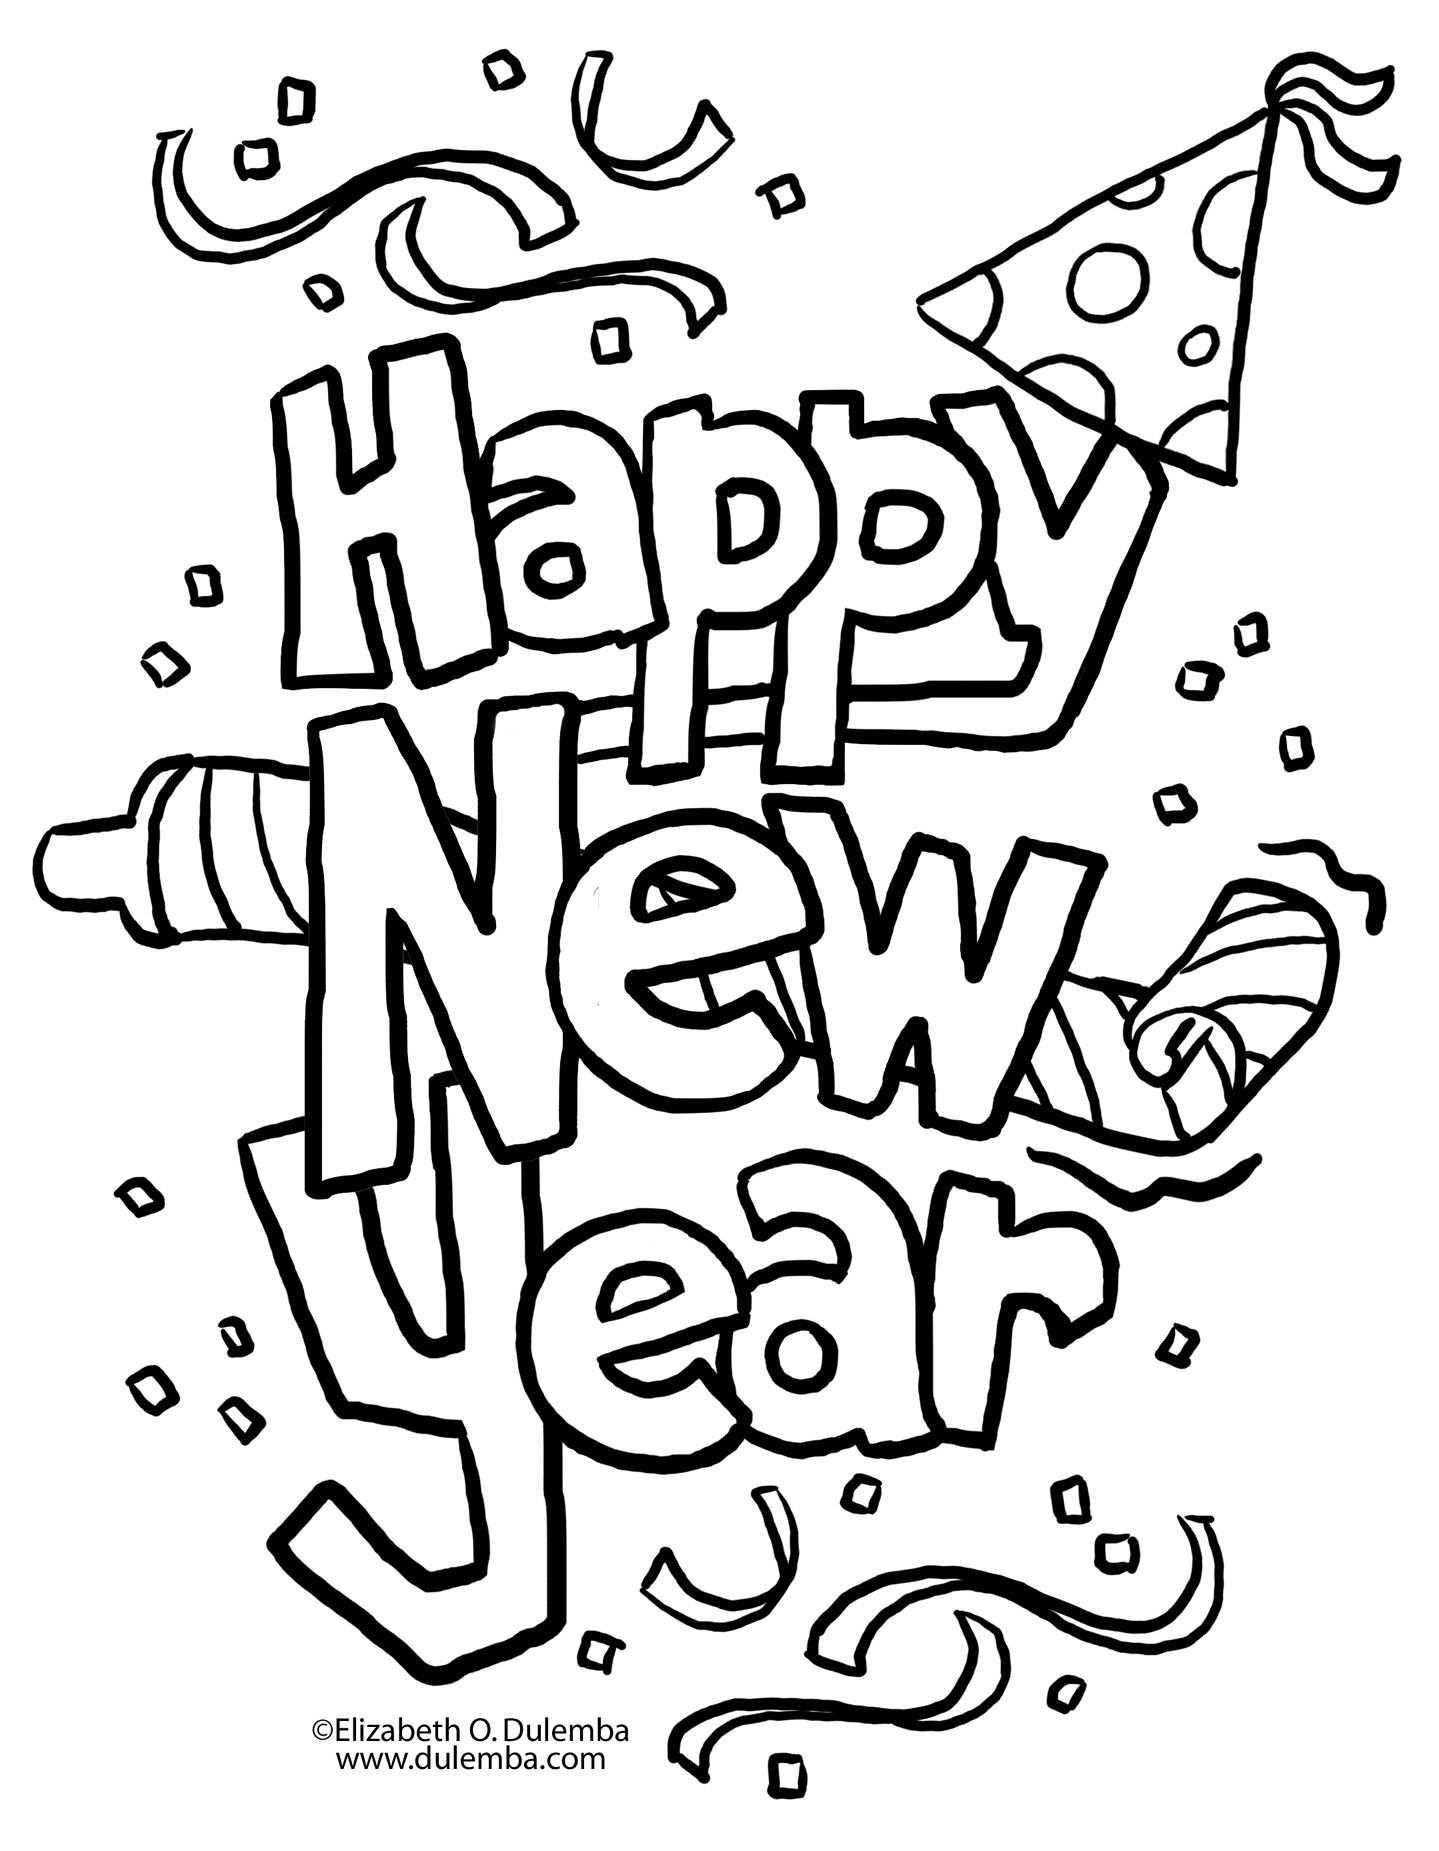 A New Twist On New Year S Eve A Little Tipsy New Year Coloring Pages New Year Clipart New Year S Eve Crafts